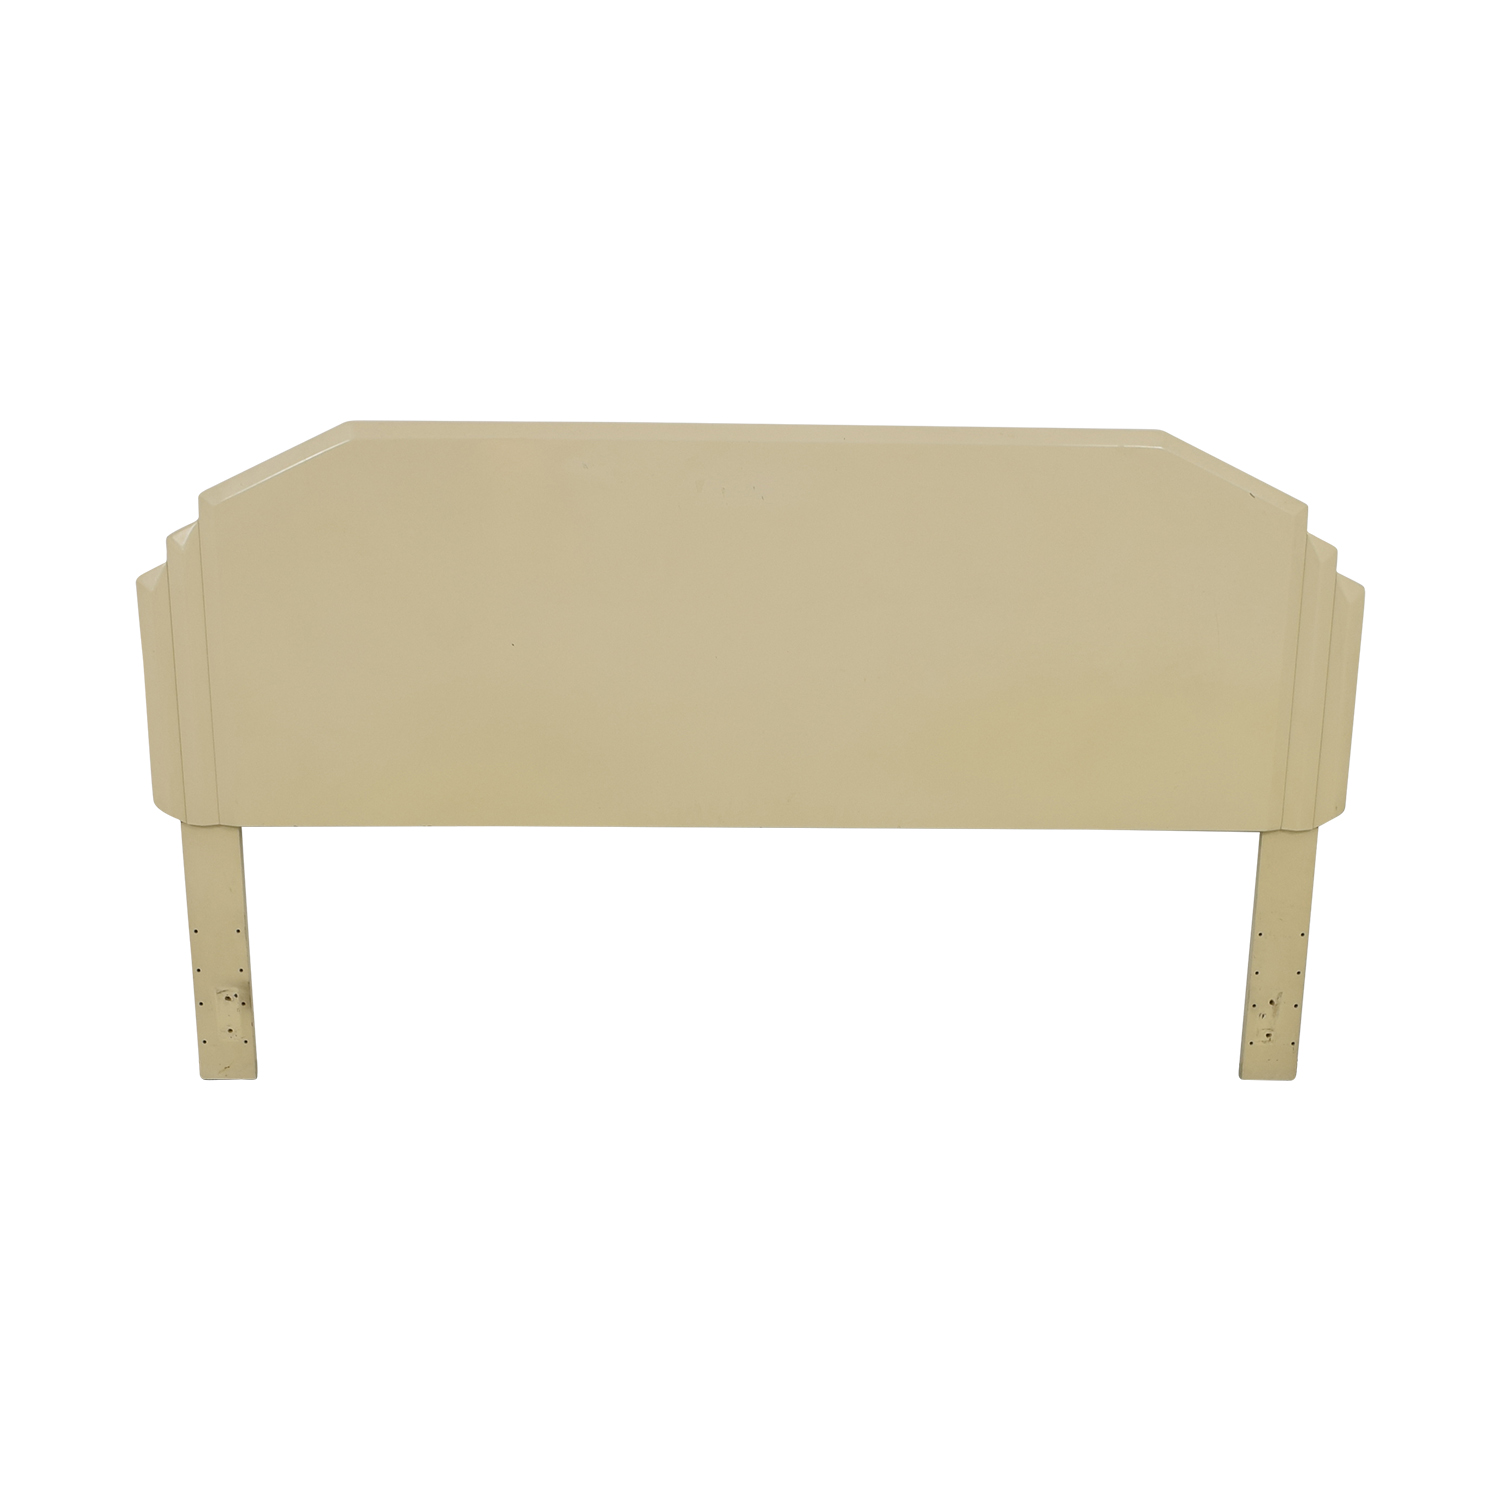 Lane Furniture Lane Furniture King Cream Headboard dimensions